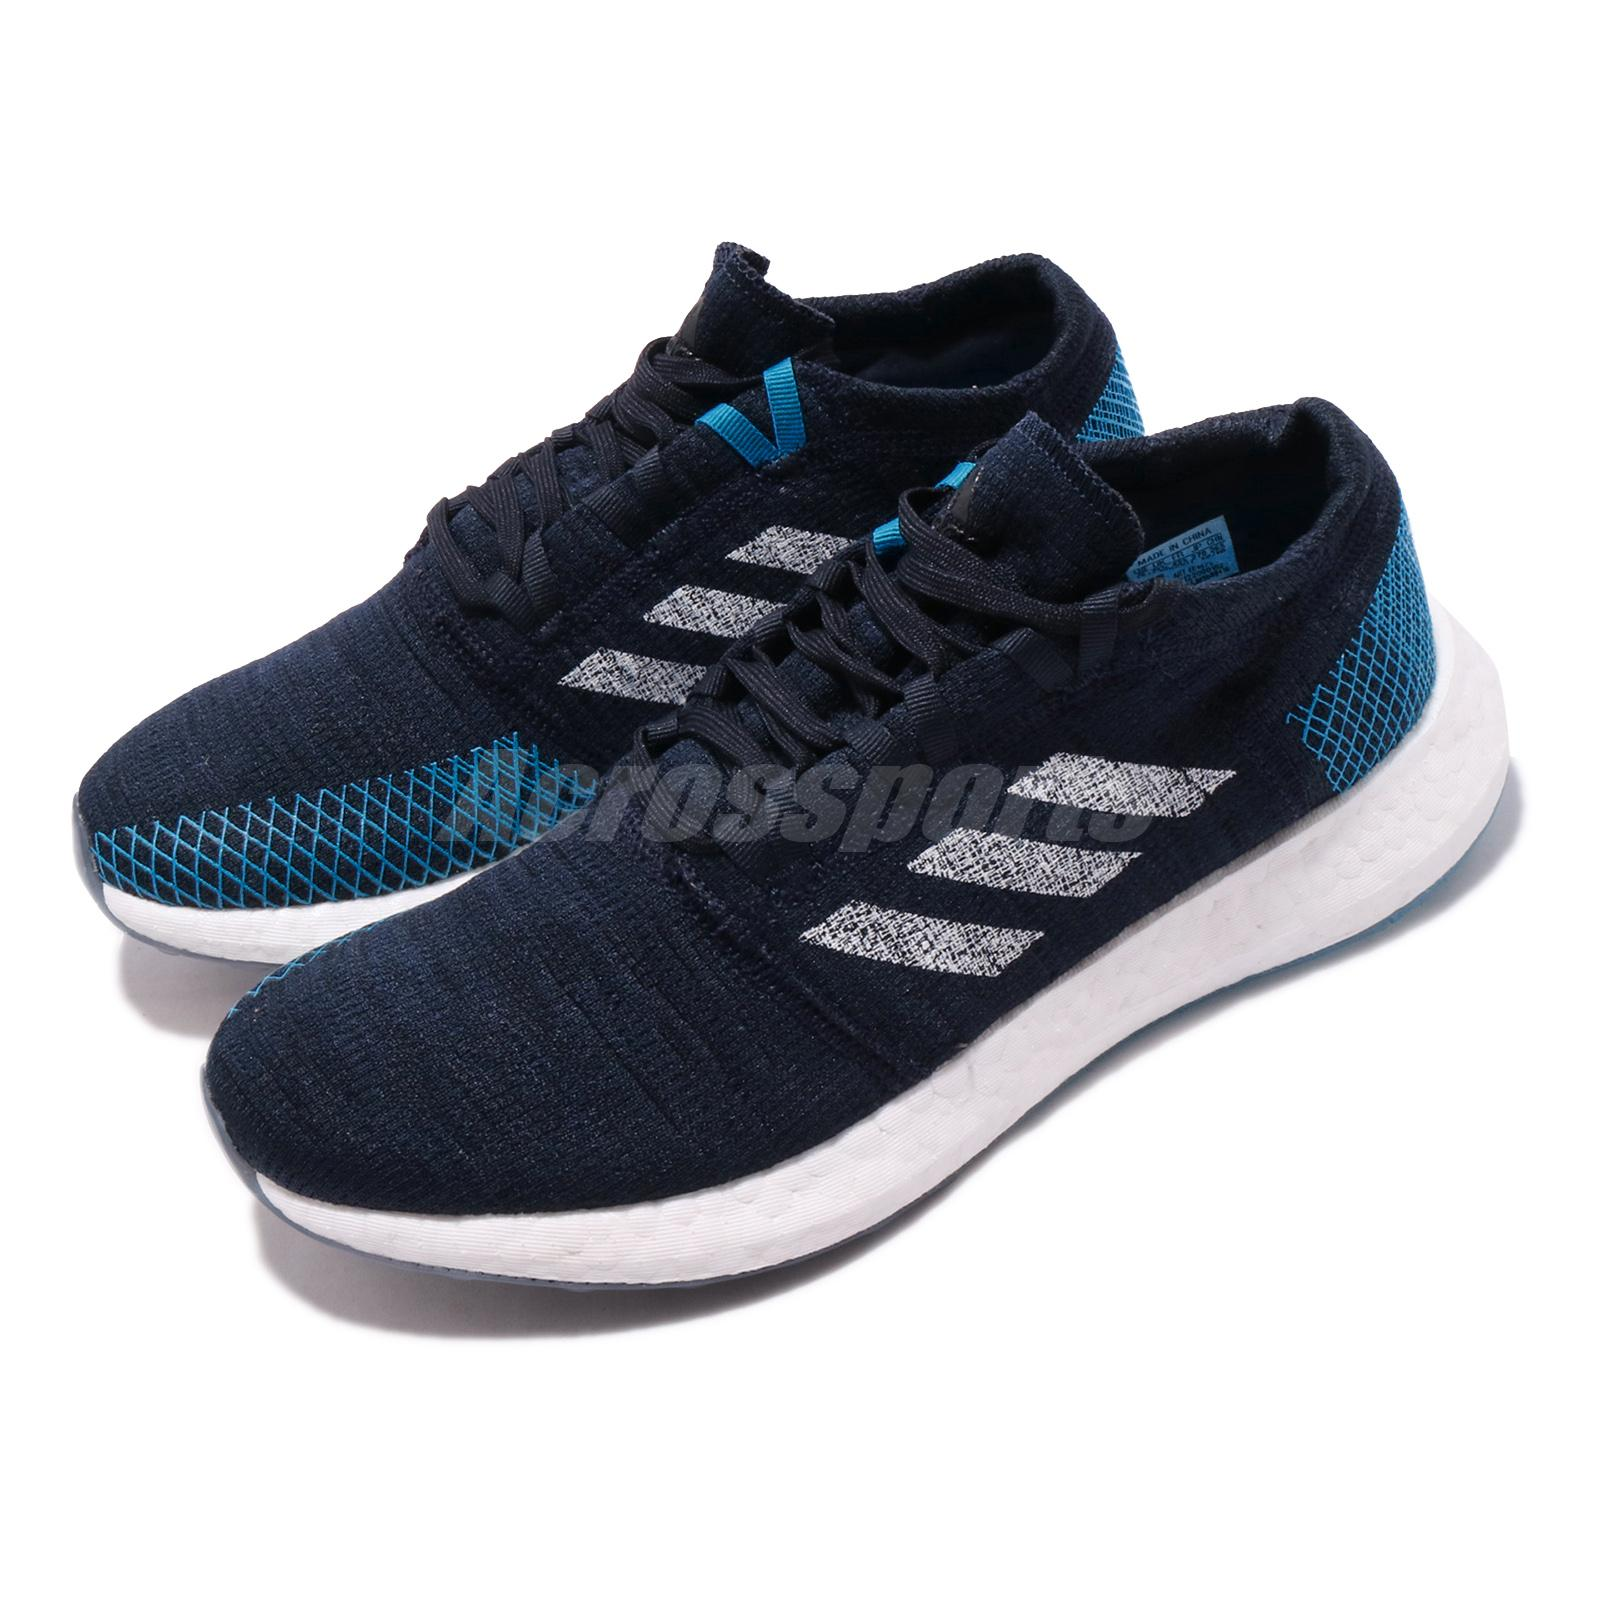 Isaac sustracción alto  adidas PureBOOST Go Blue Navy White Men Running Training Shoes Sneakers  EE4675 | eBay